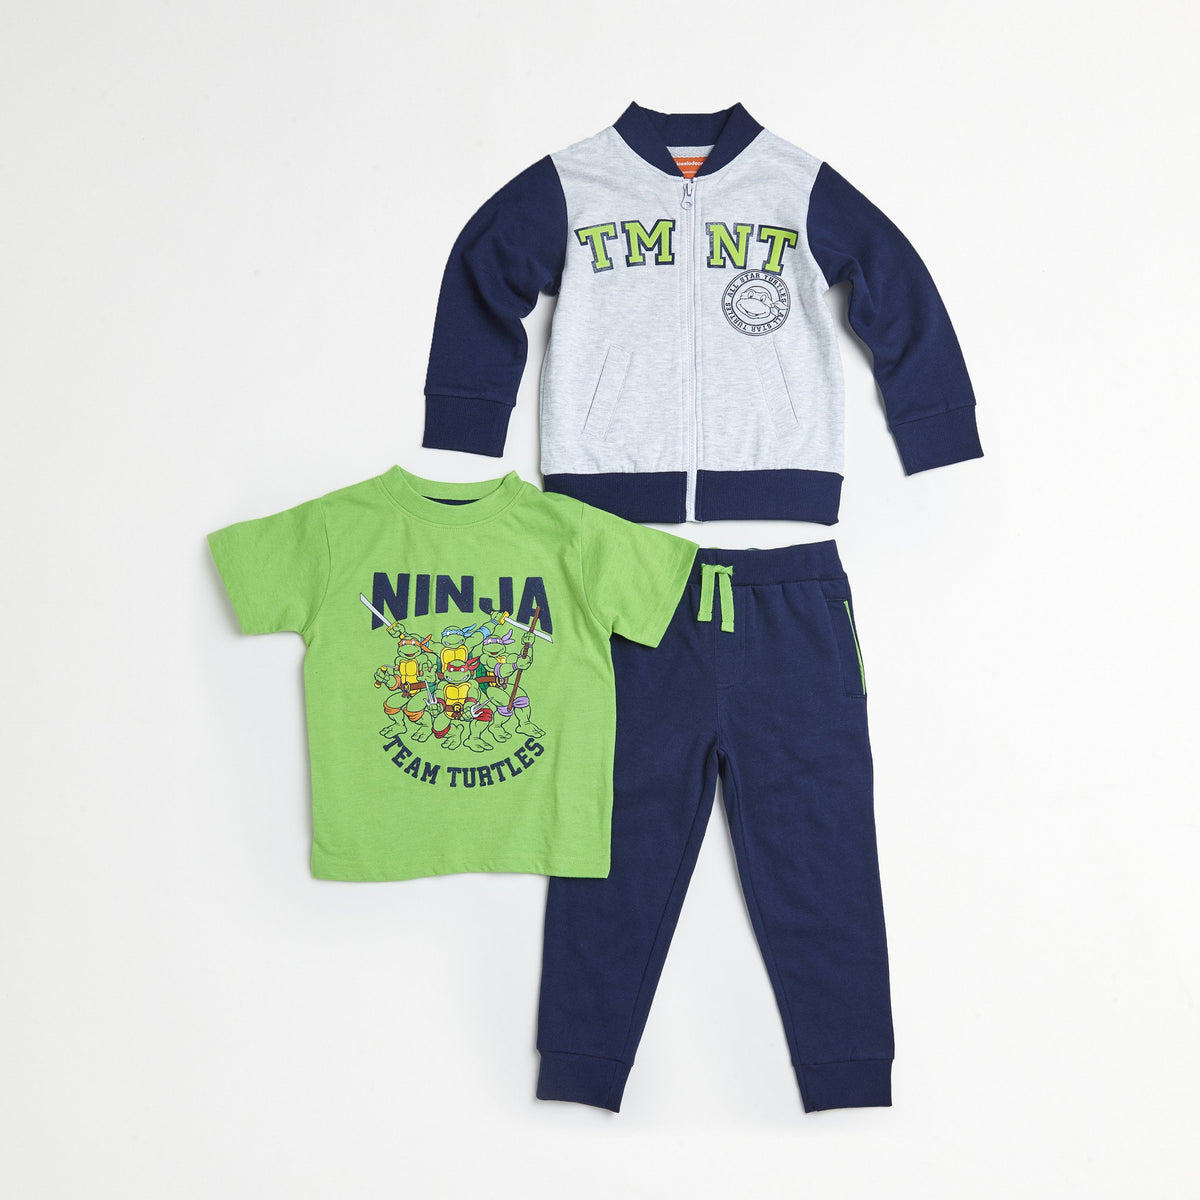 TMNT Blue/Green Jacket, Tee & Jogger Set